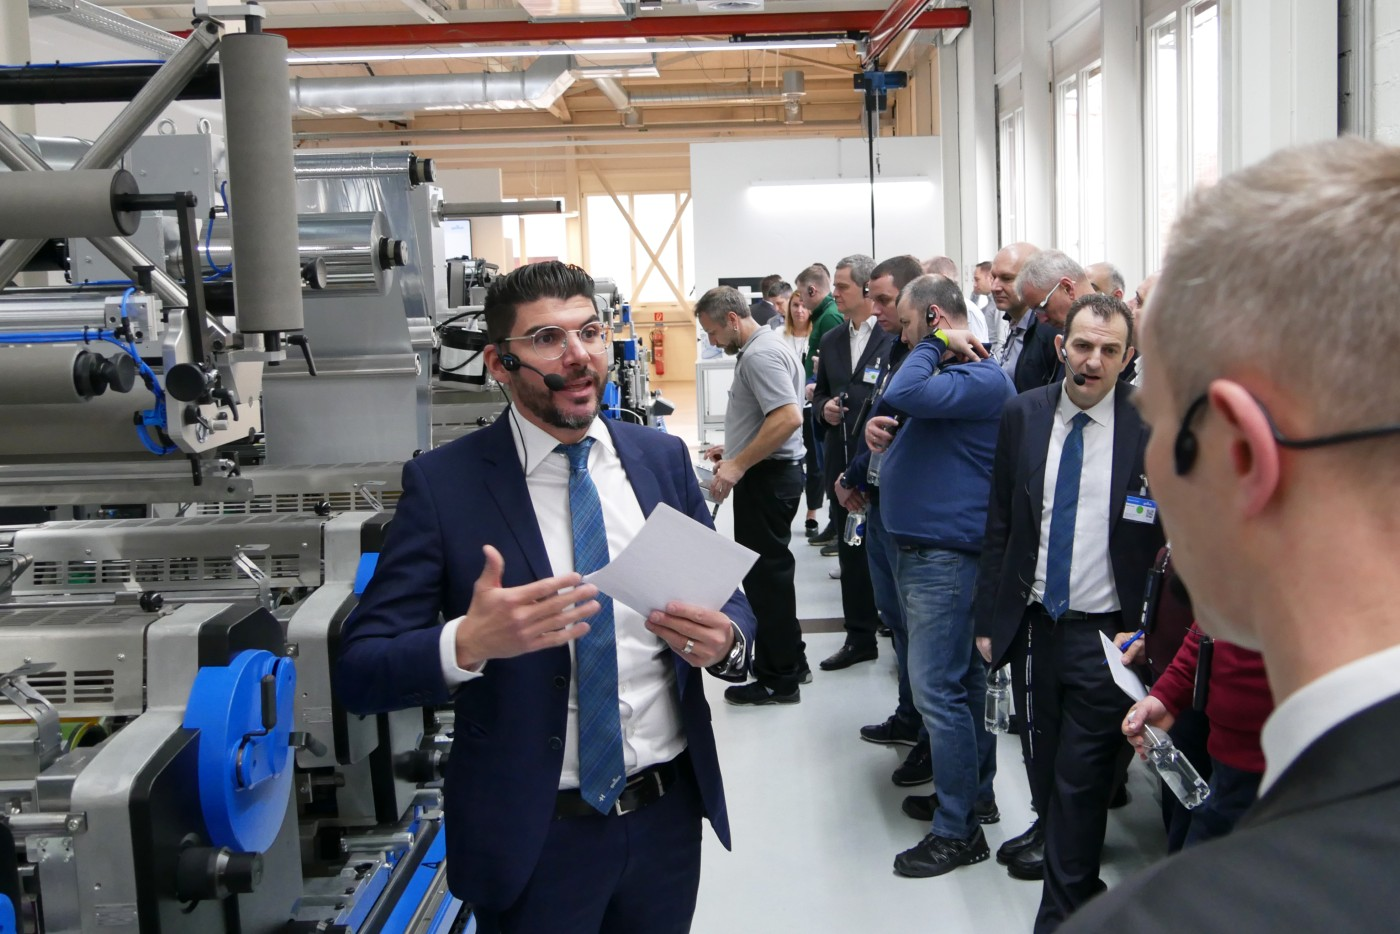 01_Gallus-Open-Day_Labelmaster-with-Rotary-Die-Cut-Unit-Quick